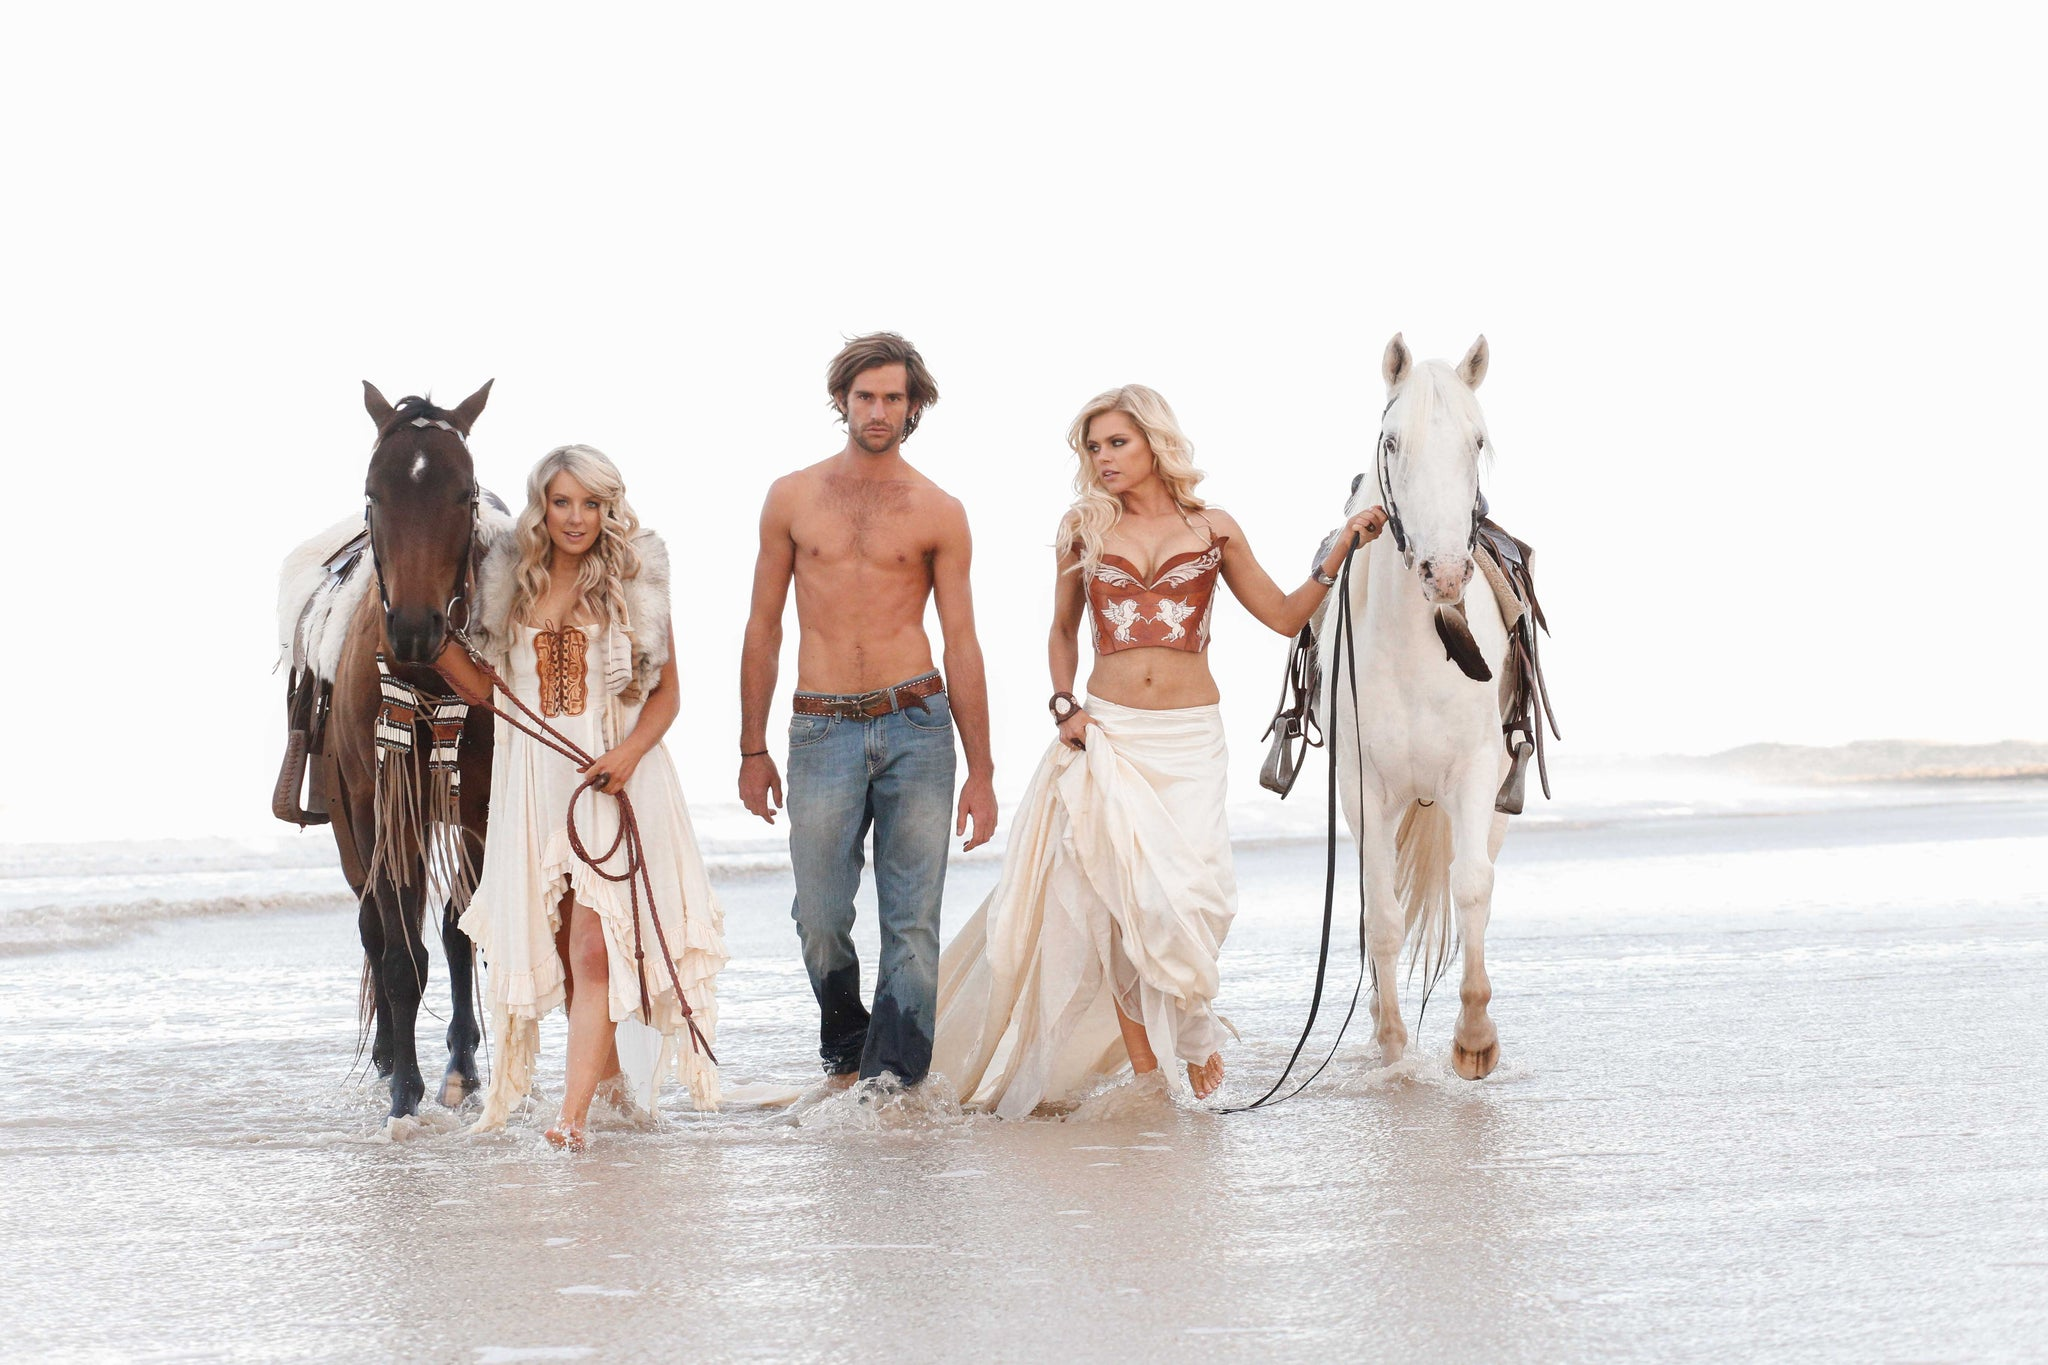 Sophie Monk beach photoshoot with horses